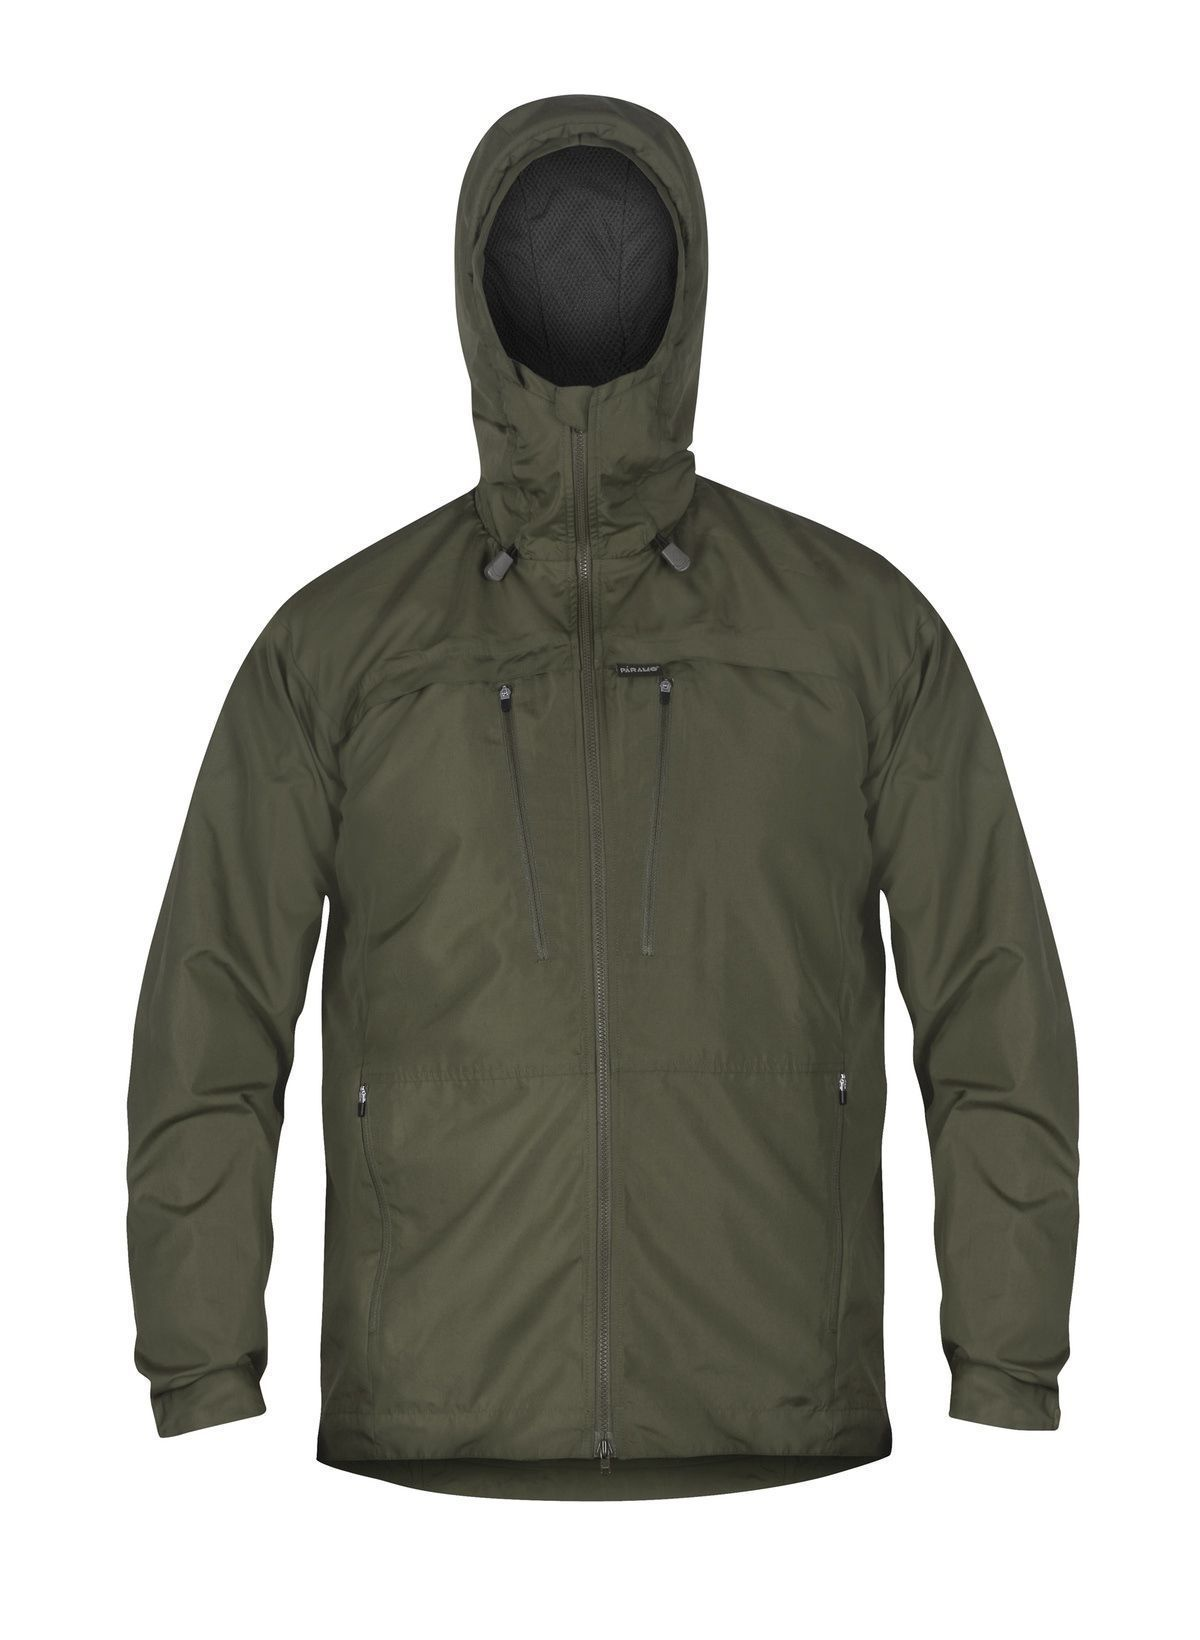 Paramo Men's Combination Bentu Fleece & Windproof Jacket